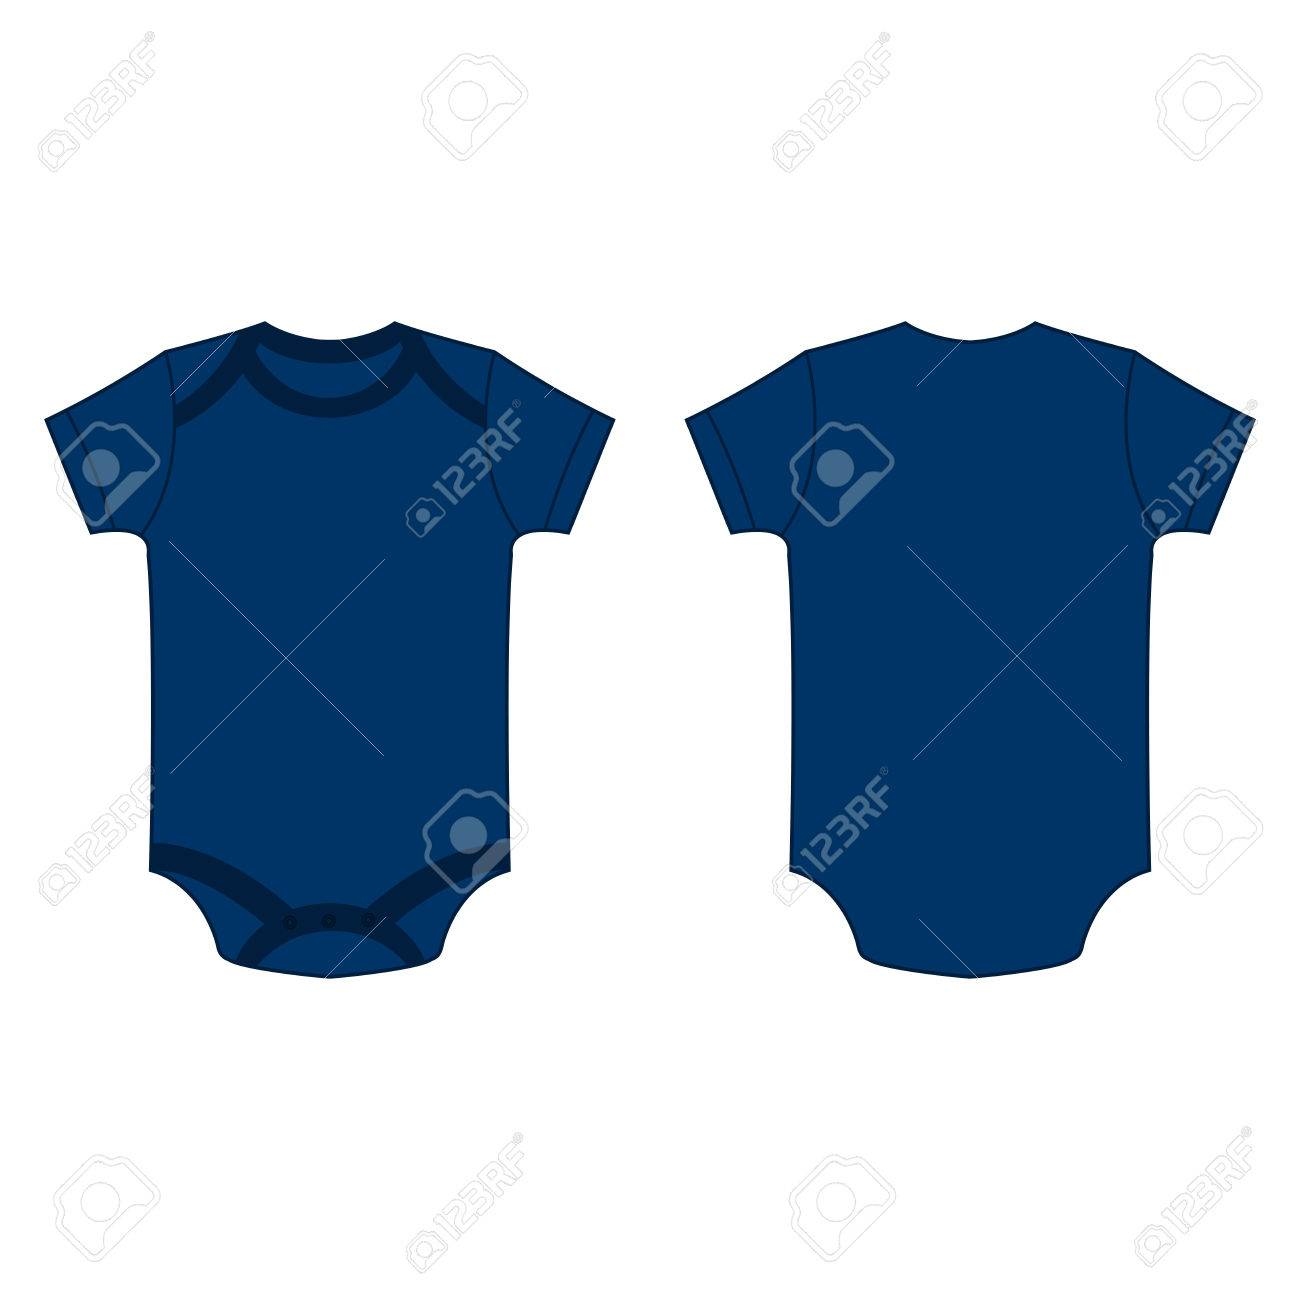 30107bbdd070 Navy Blue Baby Bodysuit Romper Vector Isolated Front And Back ...